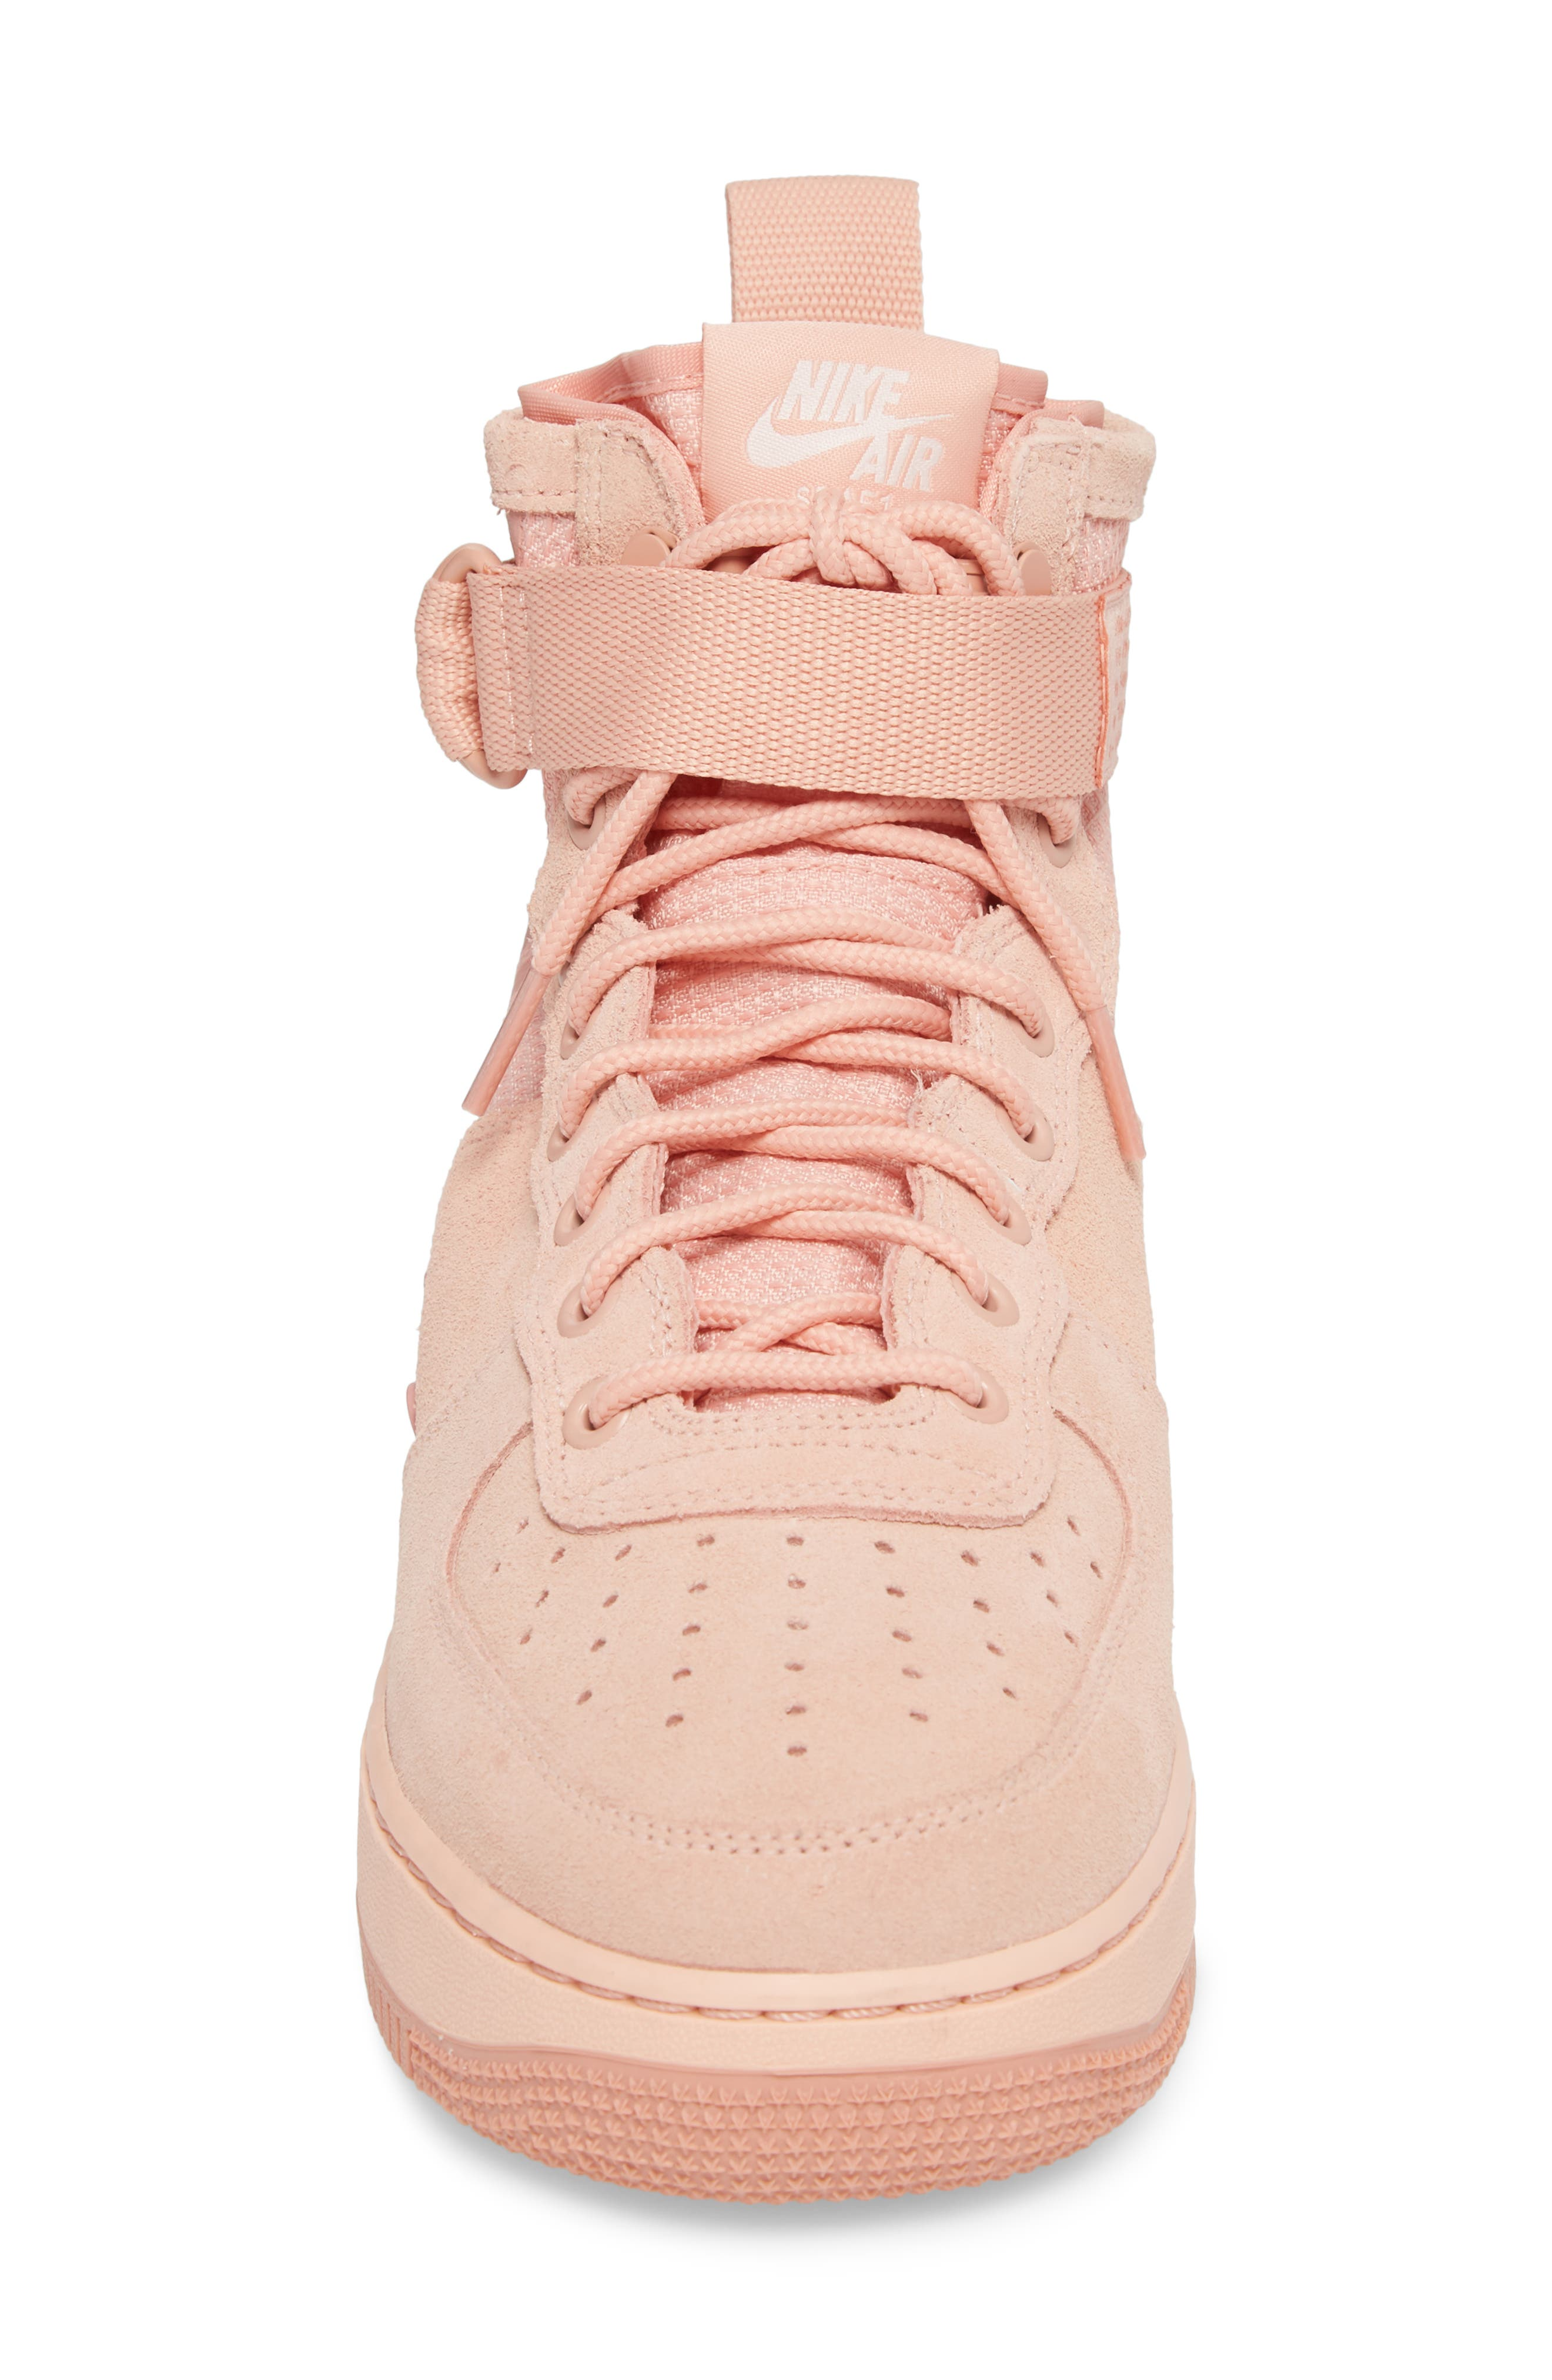 SF Air Force 1 Mid Suede Sneaker,                             Alternate thumbnail 4, color,                             Coral Stardust/ Red Stardust